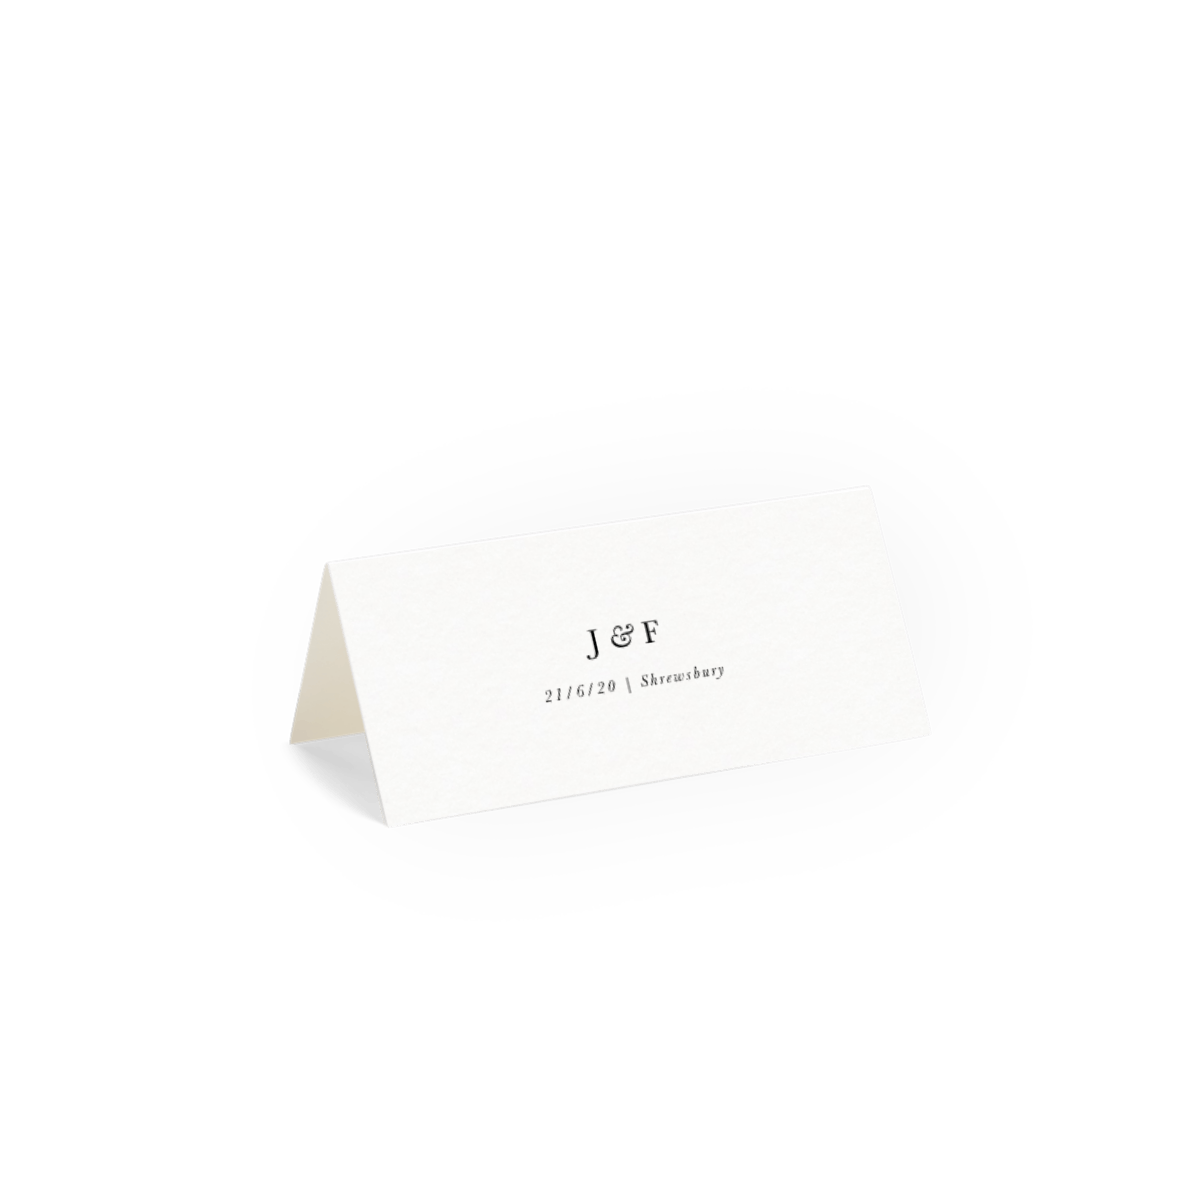 Https%3a%2f%2fwww.papier.com%2fproduct image%2f81255%2f15%2fbaskerville ampersand 19470 back 1561648045.png?ixlib=rb 1.1